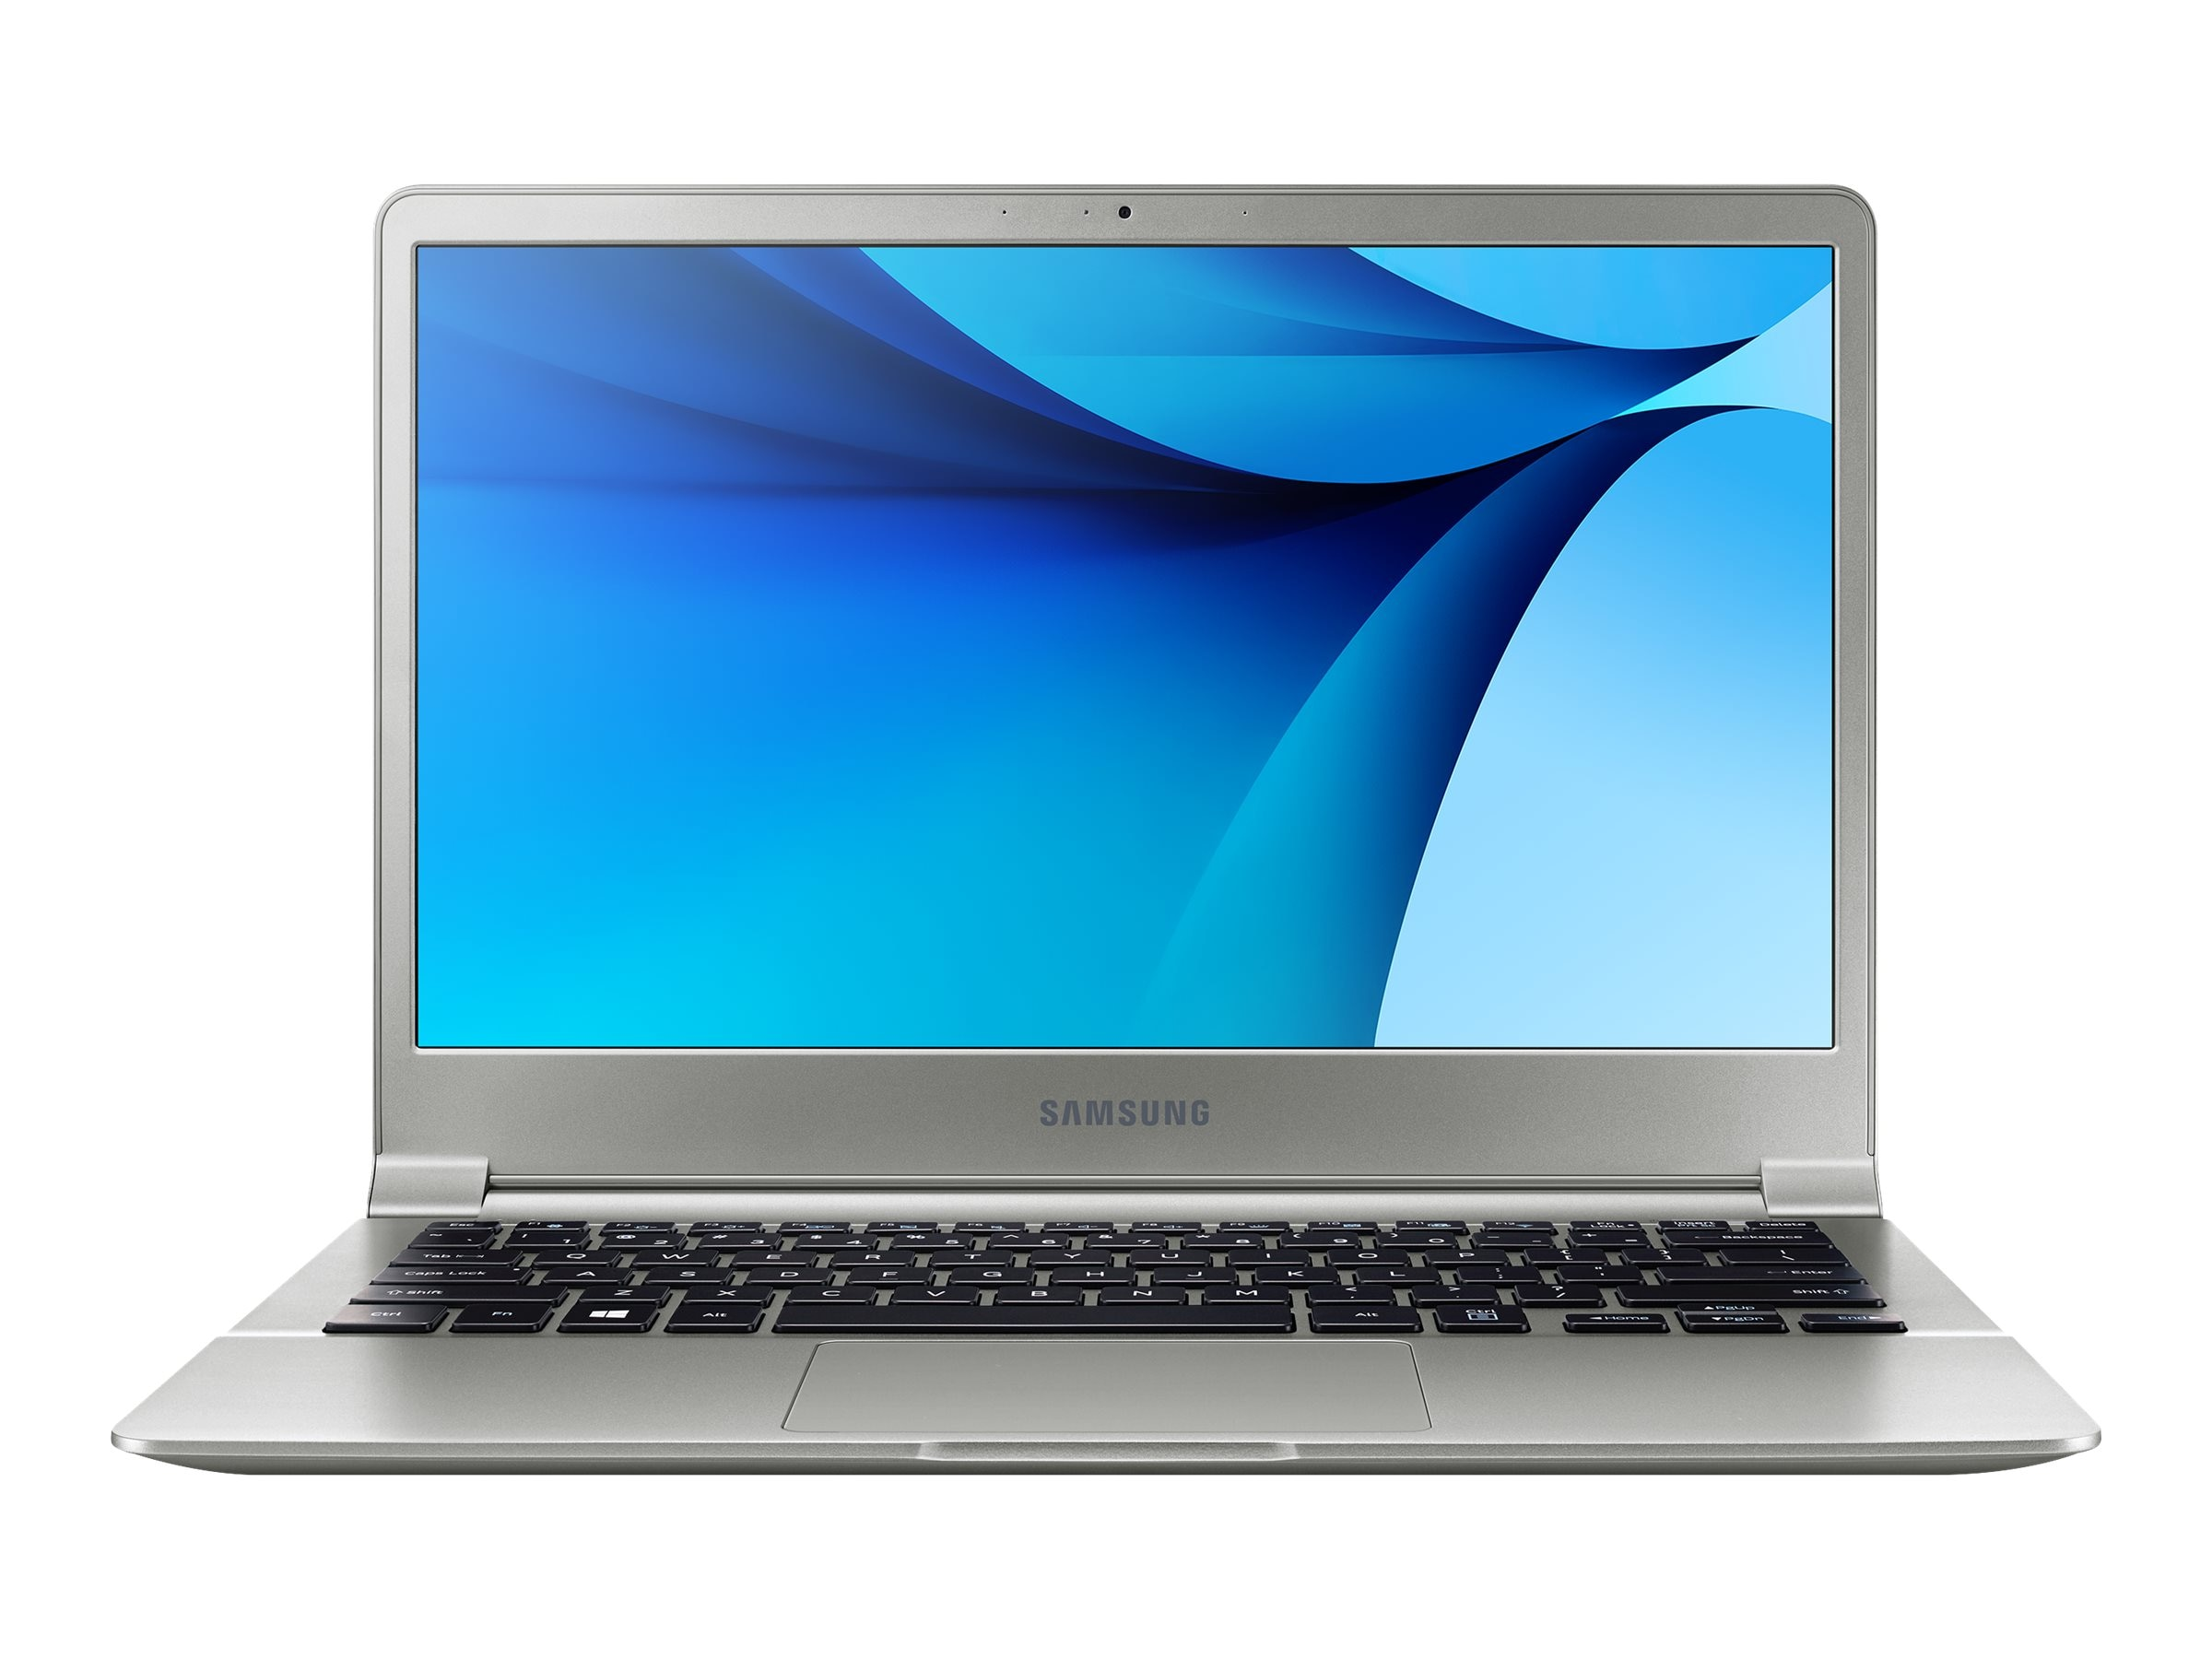 Samsung Notebook PC Core i5-6200U 8GB 128GB 13.3, NP900X3L-K03US